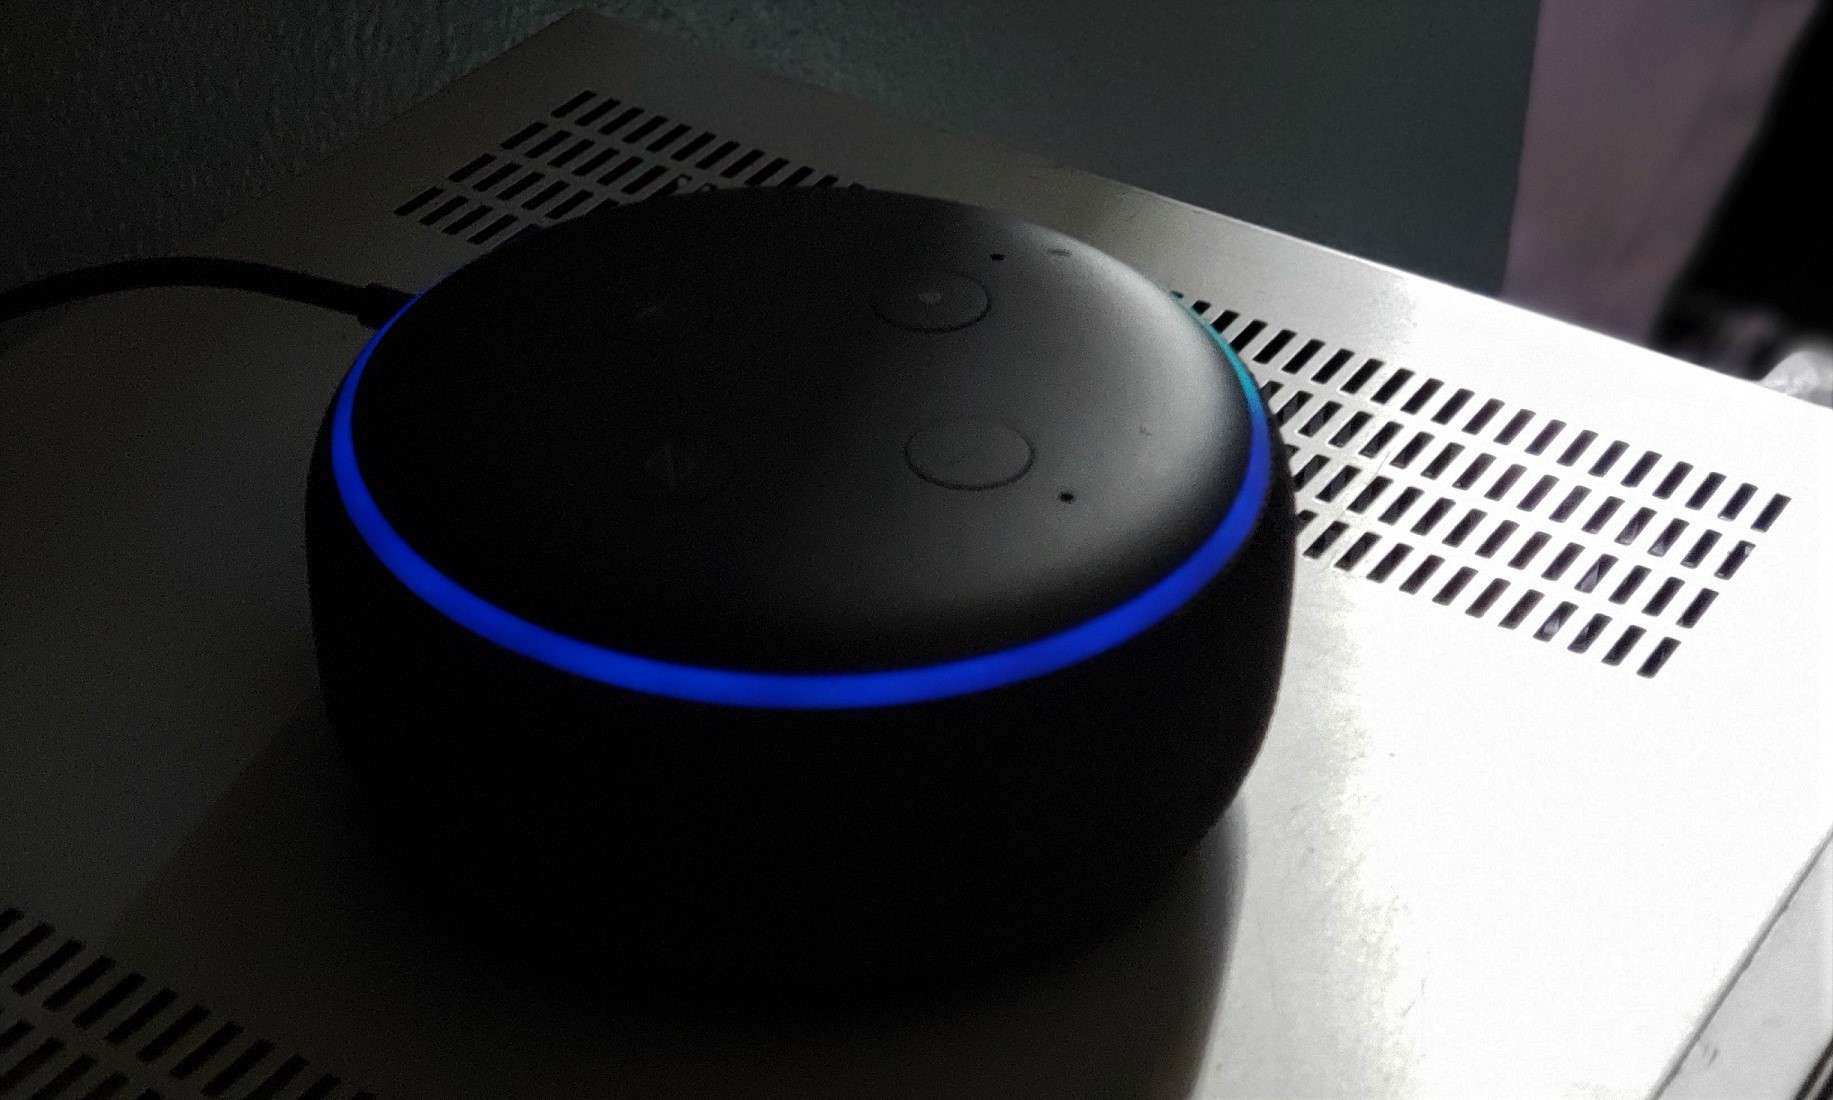 Amazon Echo Dot 2nd Gen with Alexa listening and blue ring